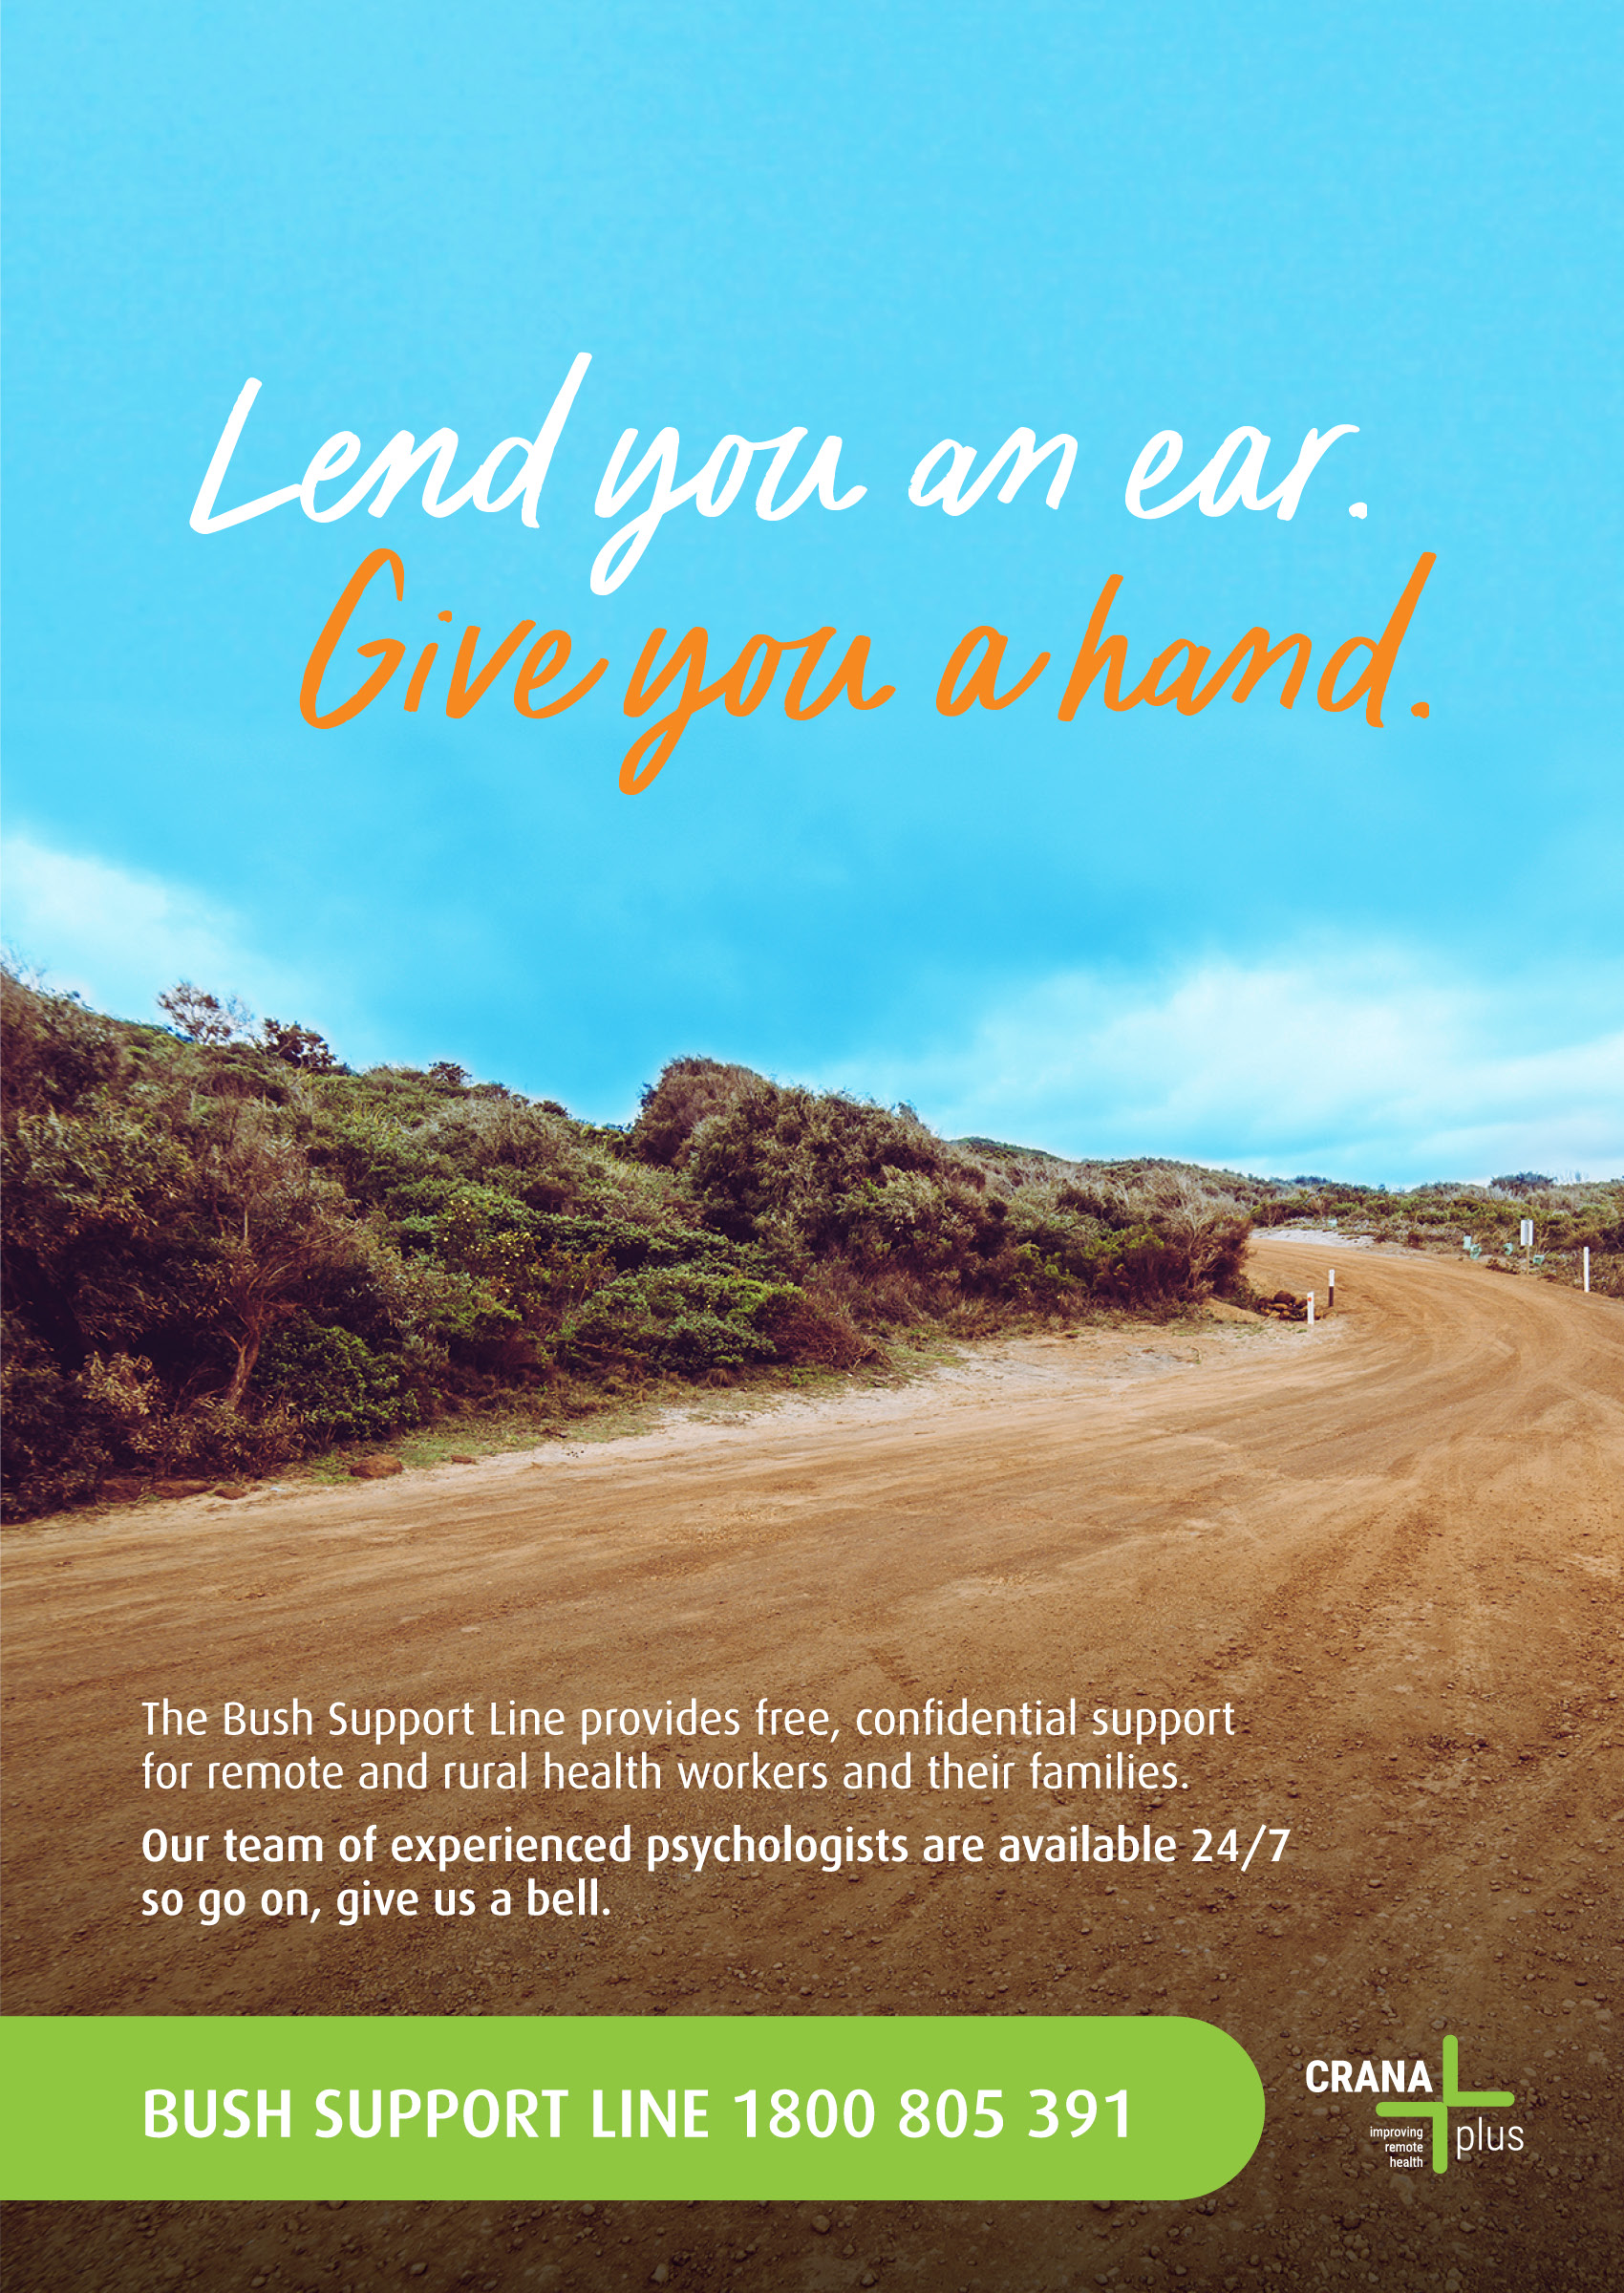 Lend you an ear. Give you a hand. The Bush Support Line provides free, confidential support for remote and rural health workers and their families.  Our team of experienced psychologist are available 24/7 so go on, give us a bell. Bush Support Line 1800 805 391 CRANAplus improving Remote health